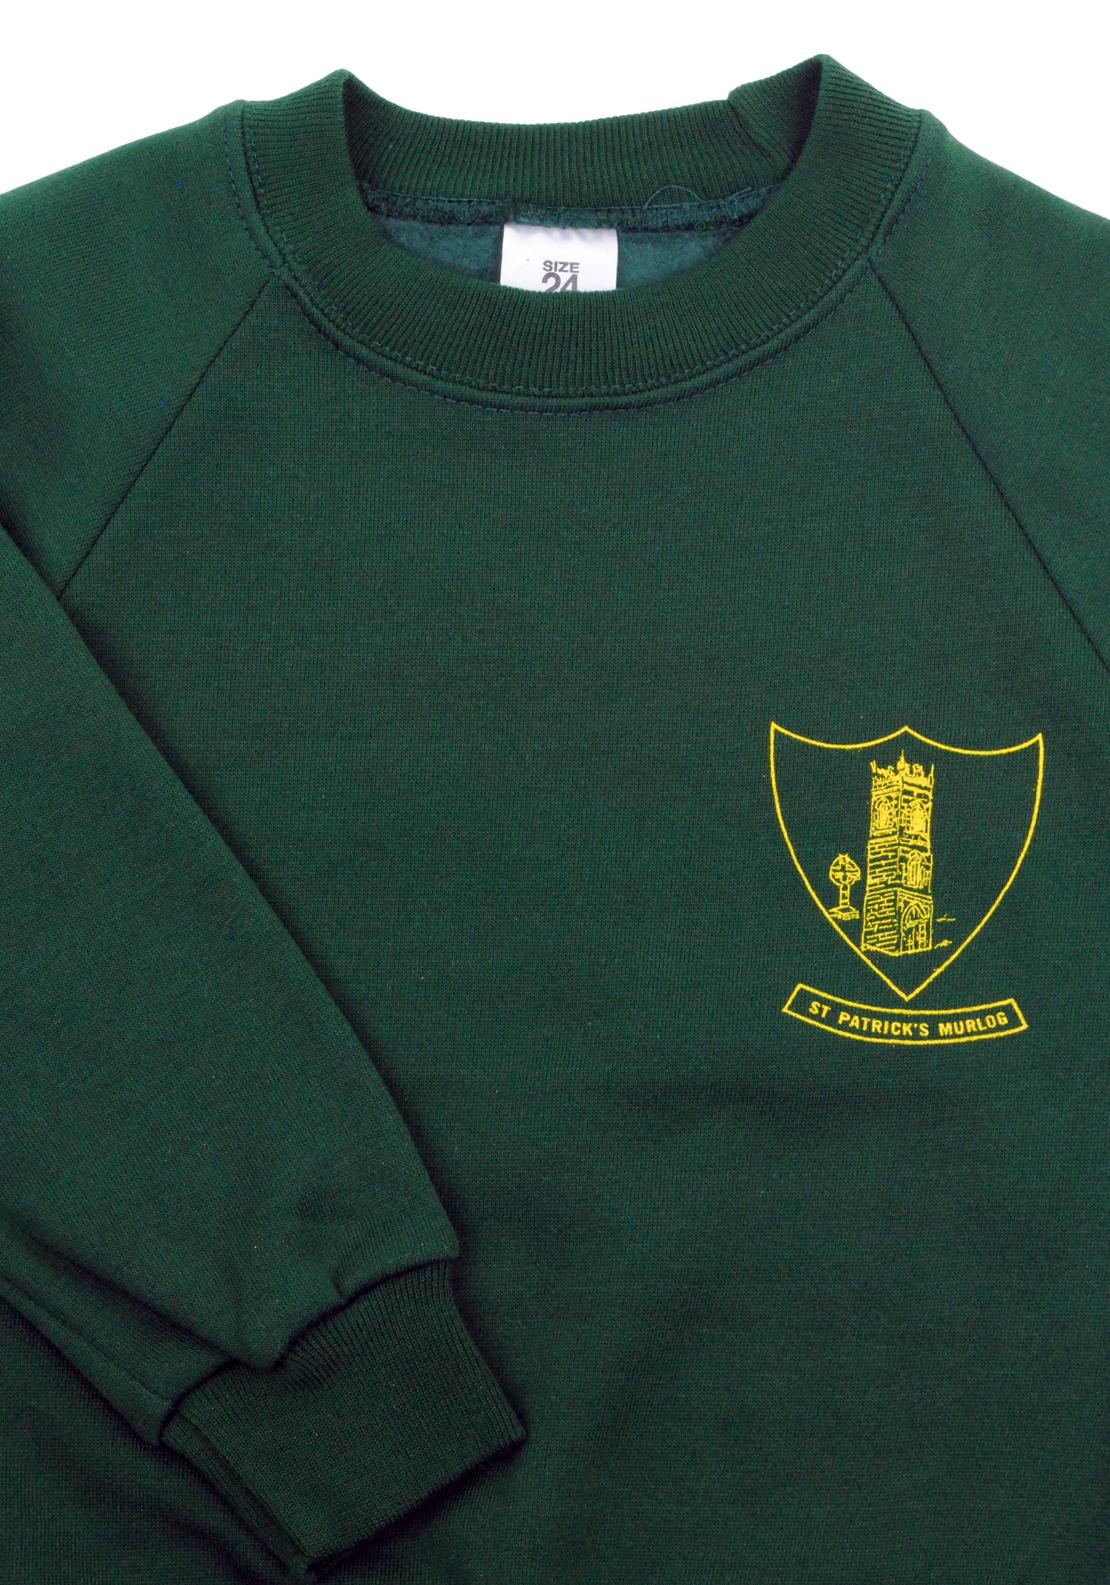 St Patricks Murlog N.S. School Jumper, Green